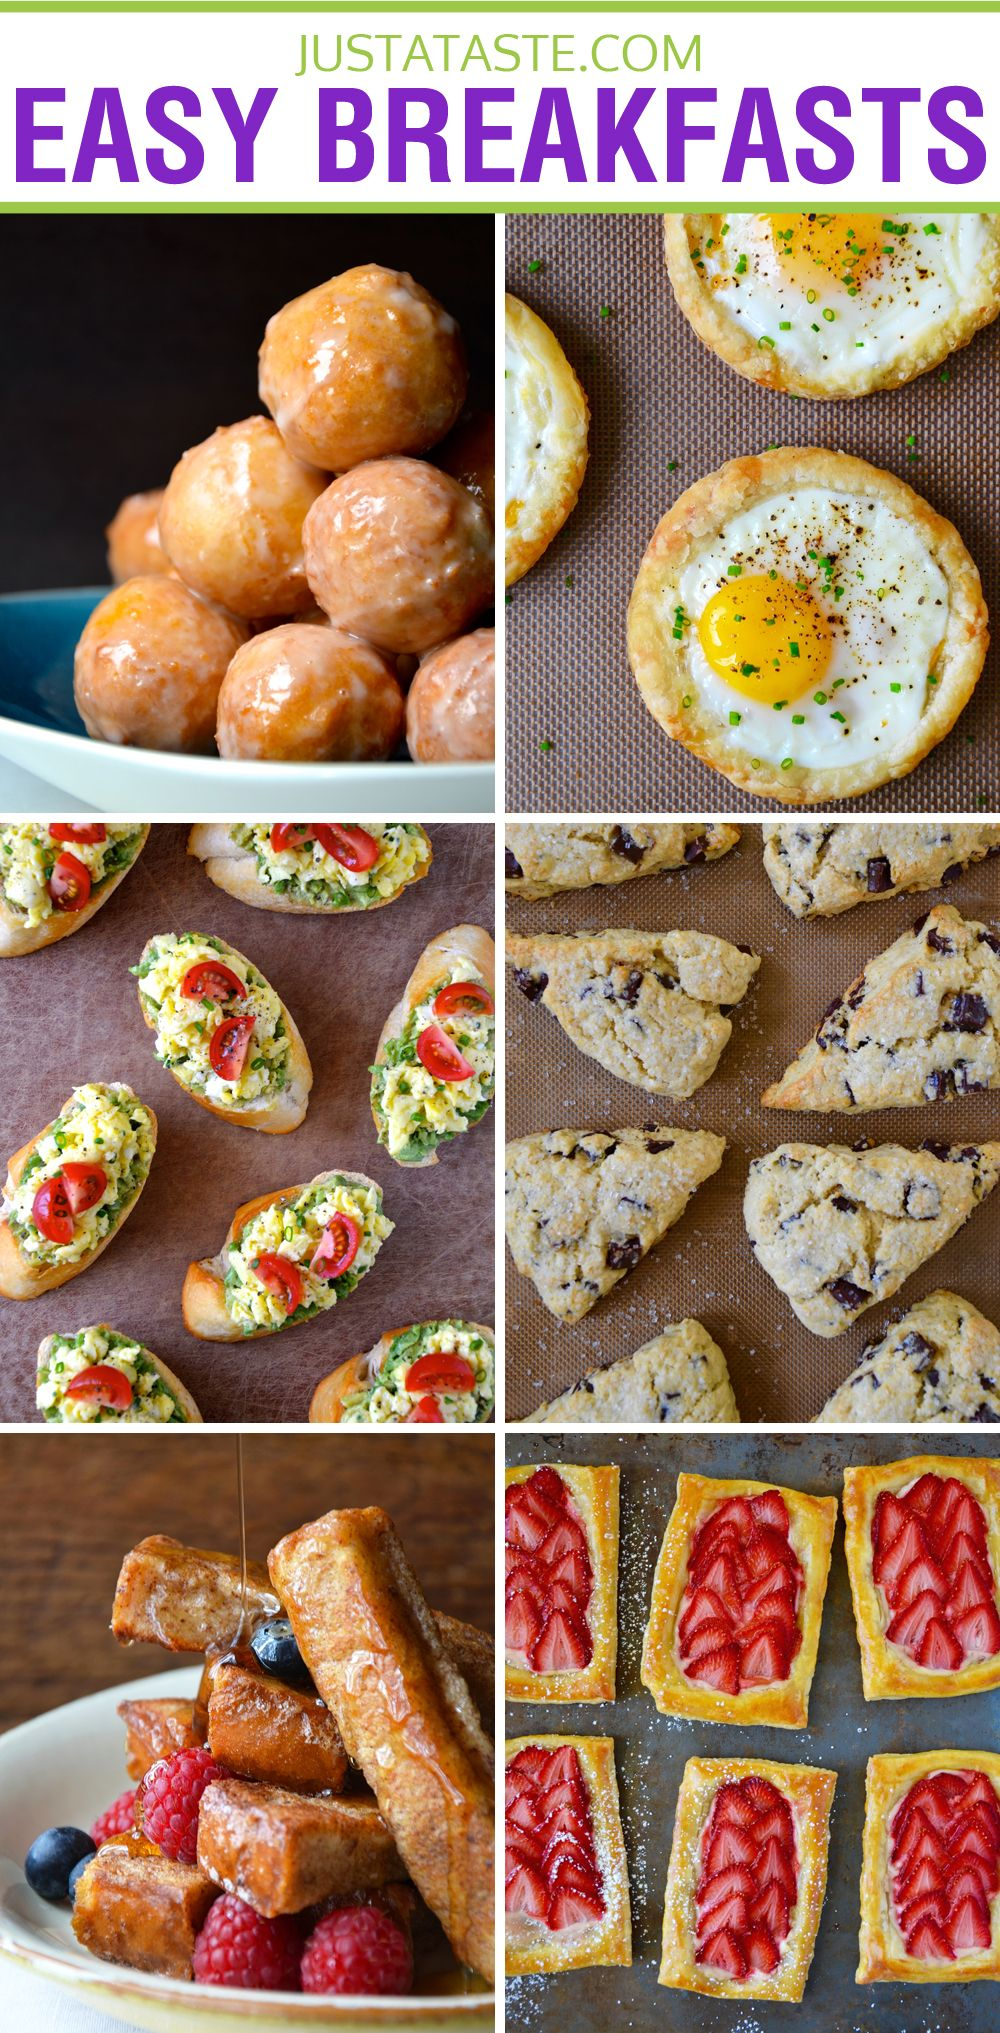 Quick And Easy Breakfast Recipes From Justataste Com Breakfast Recipes Easy Recipes Quick And Easy Breakfast